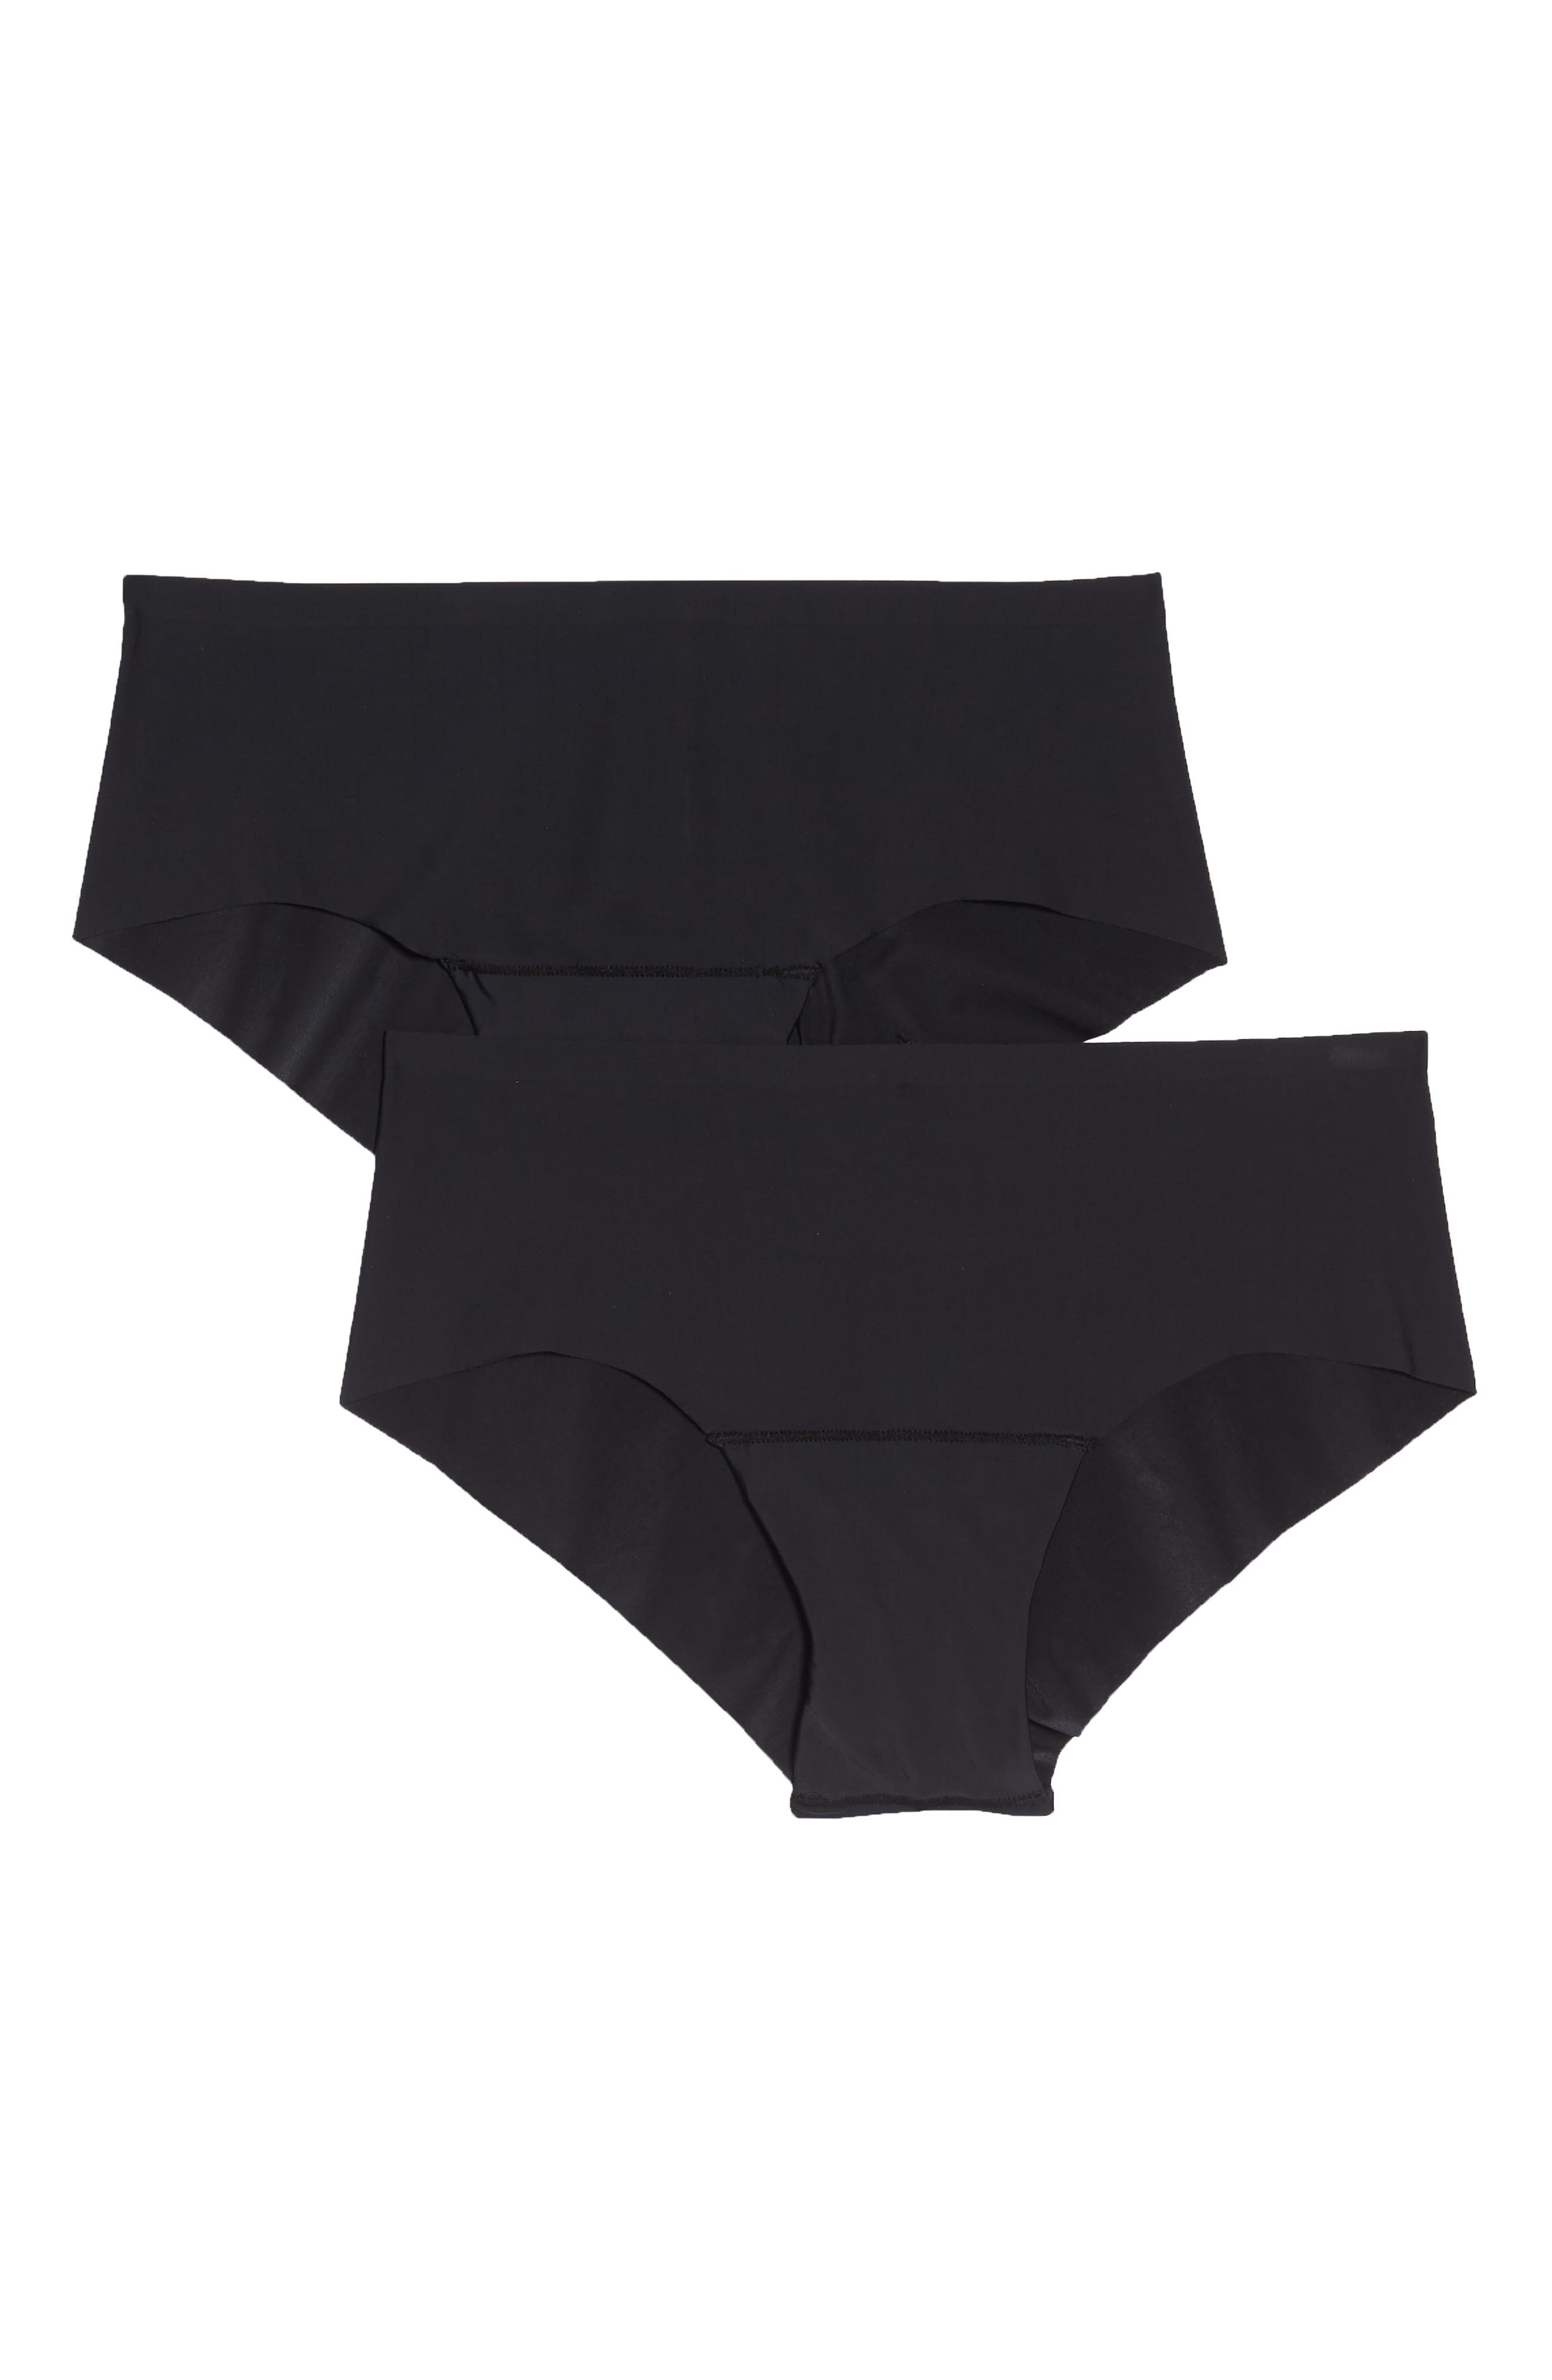 2-Pack Dream Invisibles Hipster Panties,                         Main,                         color, Black